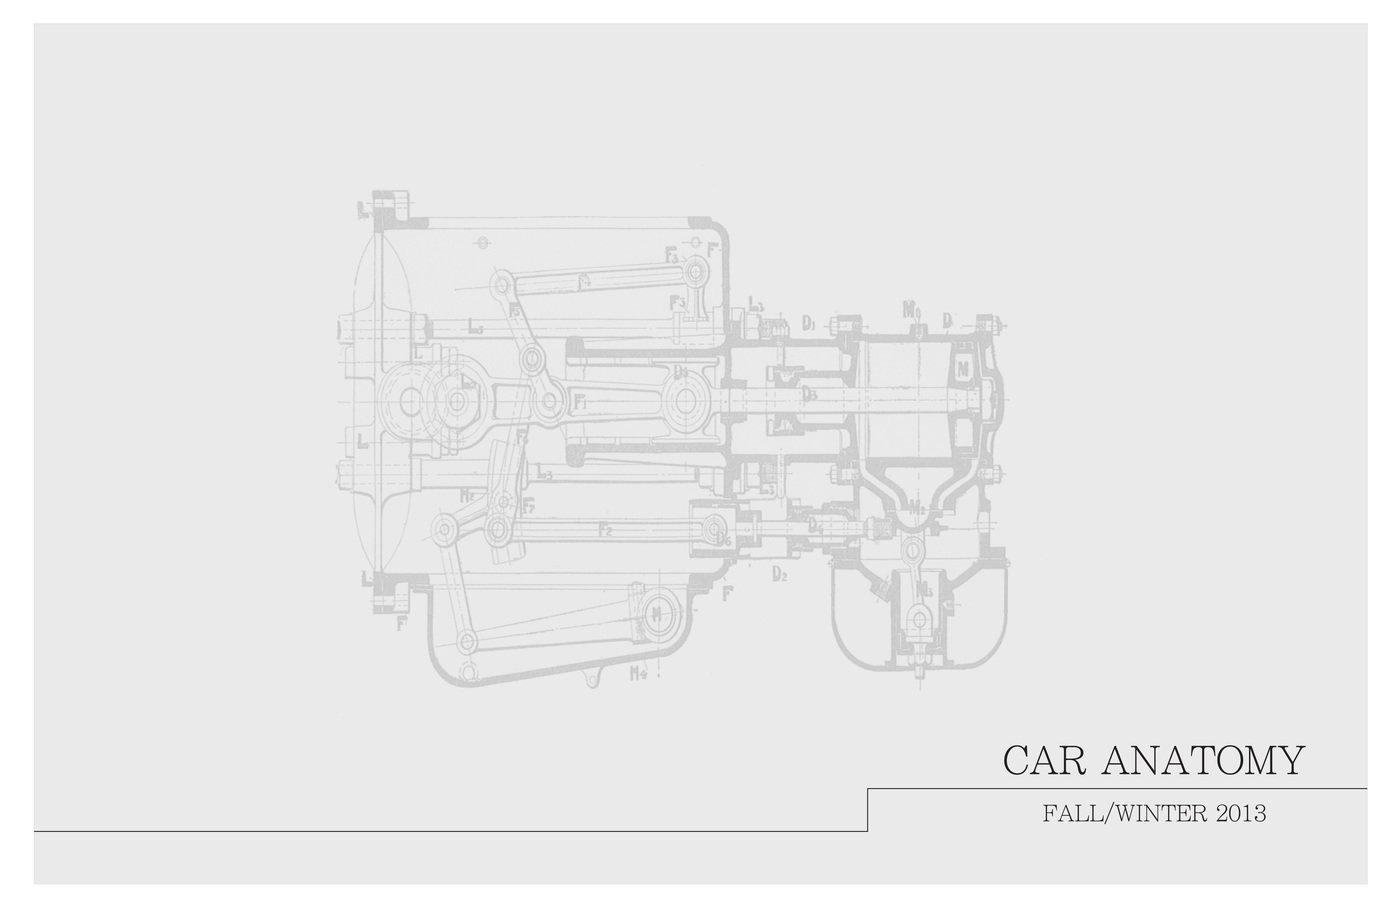 Car Anatomy by Ida Tse at Coroflot.com